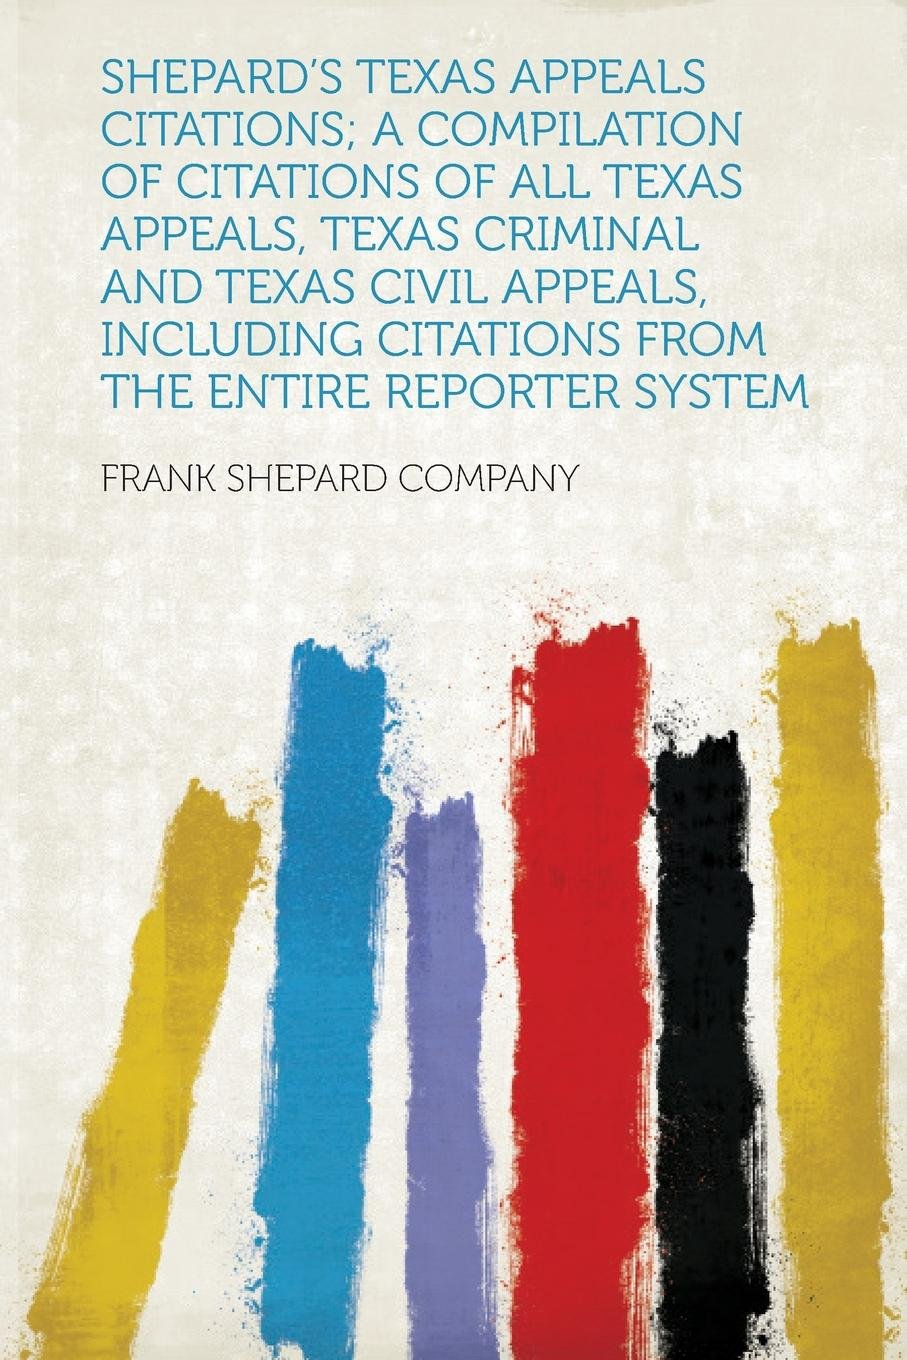 Download Shepard's Texas Appeals Citations; a Compilation of Citations of All Texas Appeals, Texas Criminal and Texas Civil Appeals, Including Citations from the Entire Reporter System pdf epub